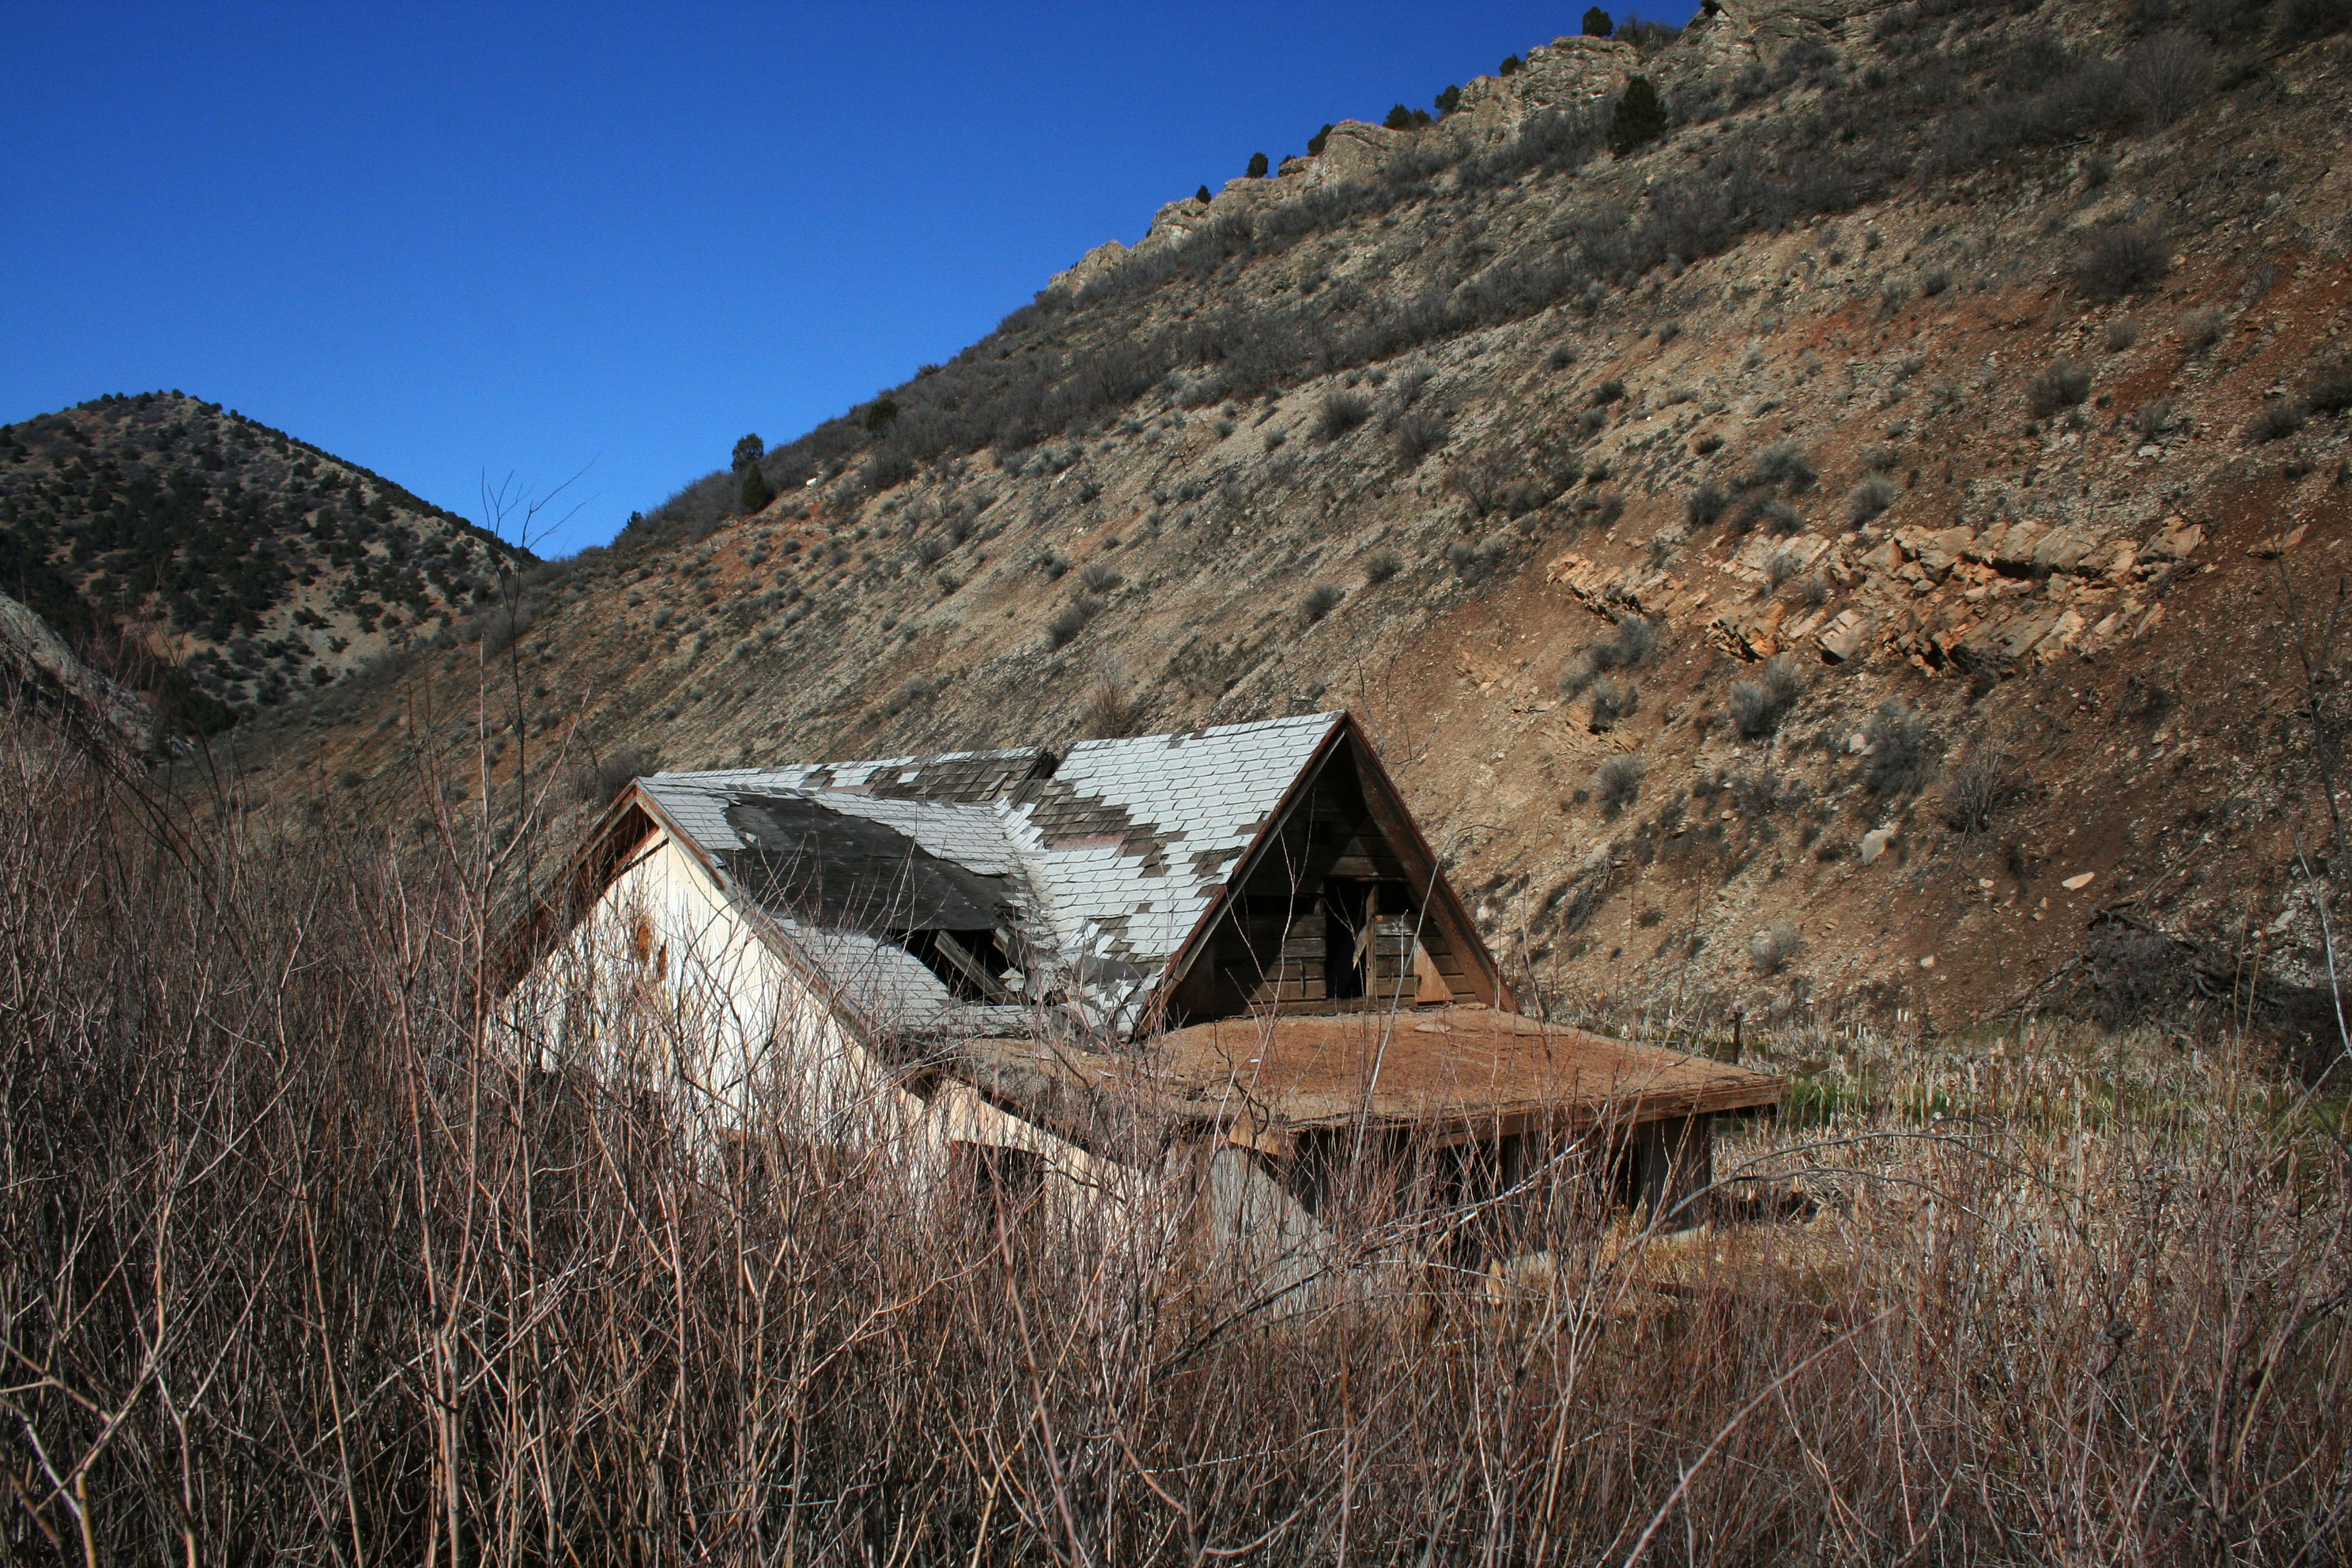 File:Buried house, Thistle, Utah.jpg - Wikimedia Commons